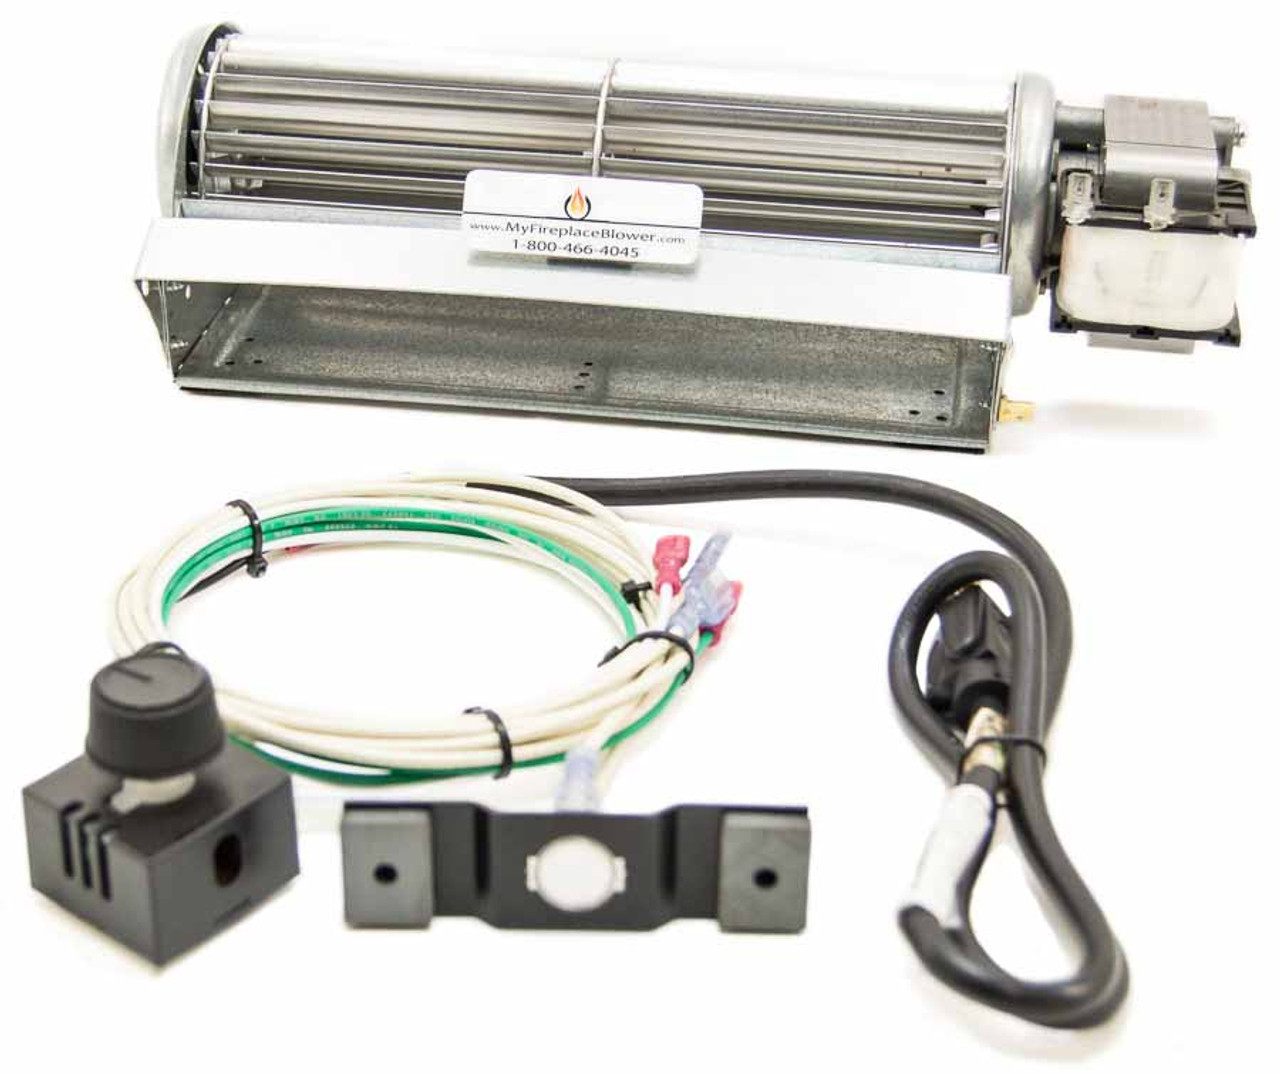 small resolution of blot240 fireplace blower fan kit for martin gas fireplaces